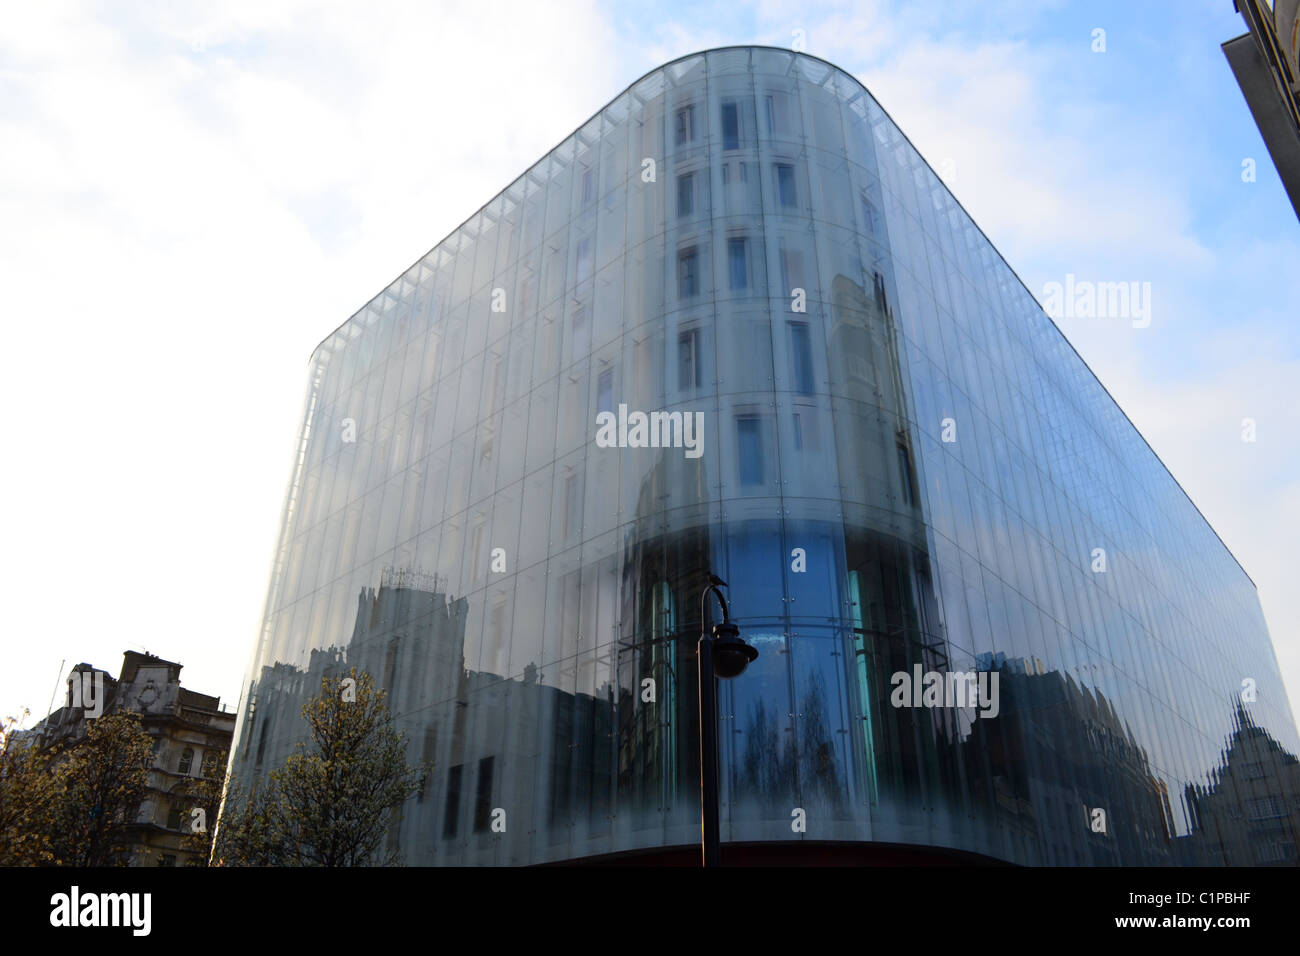 W Hotel Leicester Square London UK ARTIFEX LUCIS - Stock Image